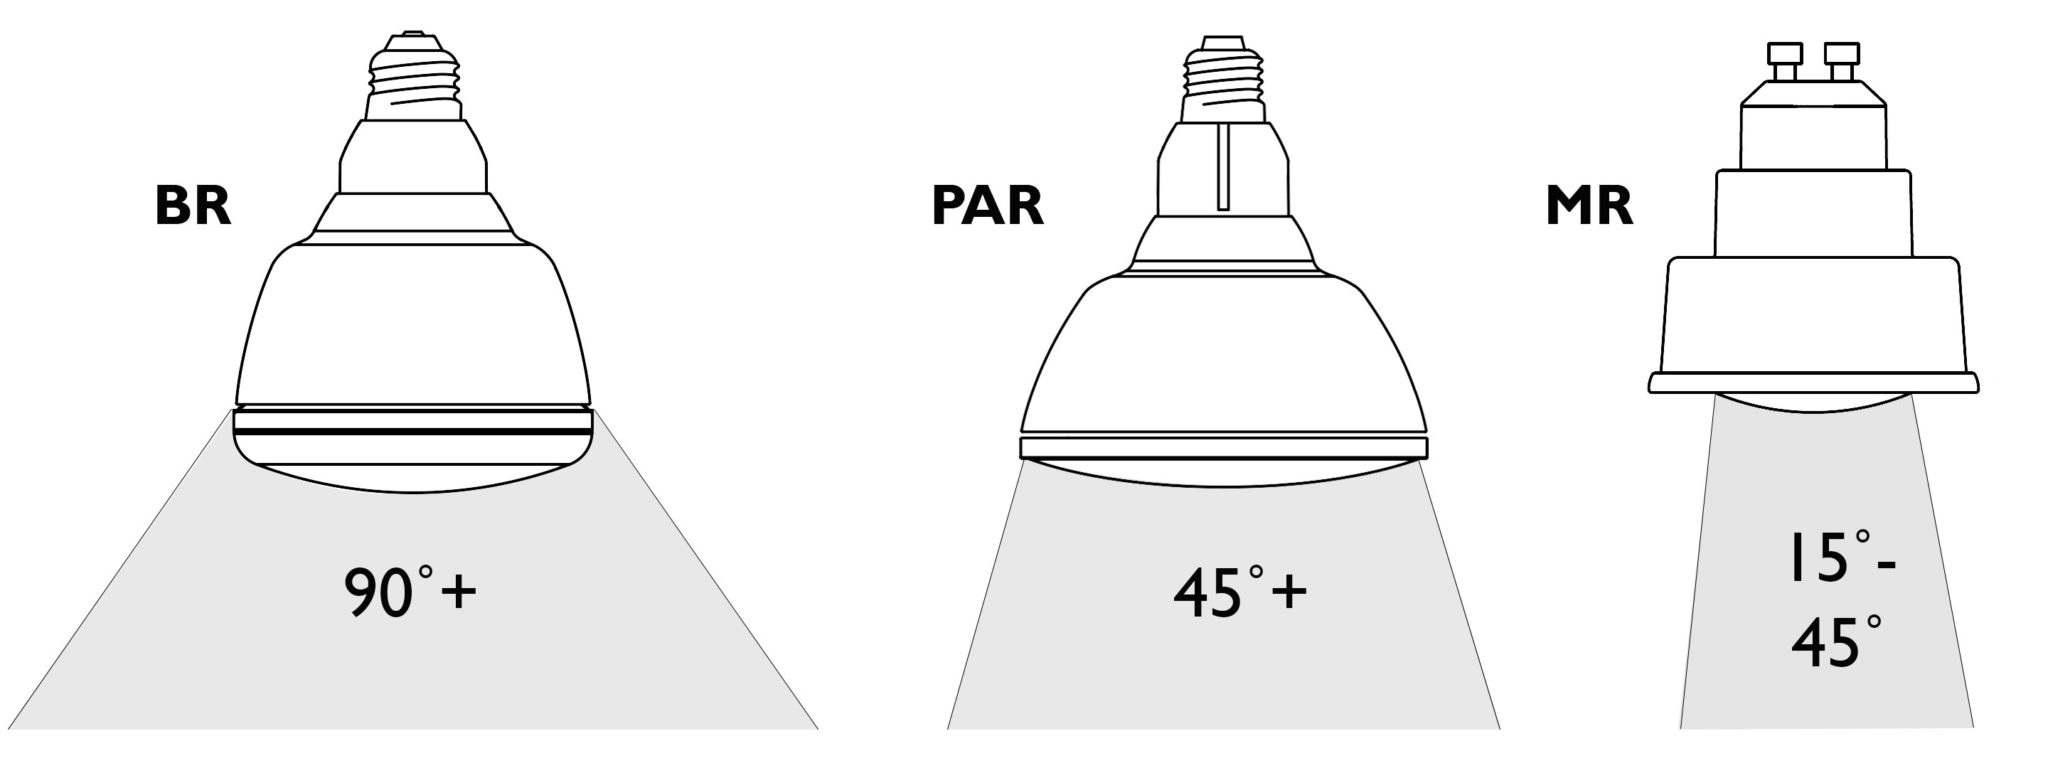 BR PAR MR Comparison Illustration Diagram Image